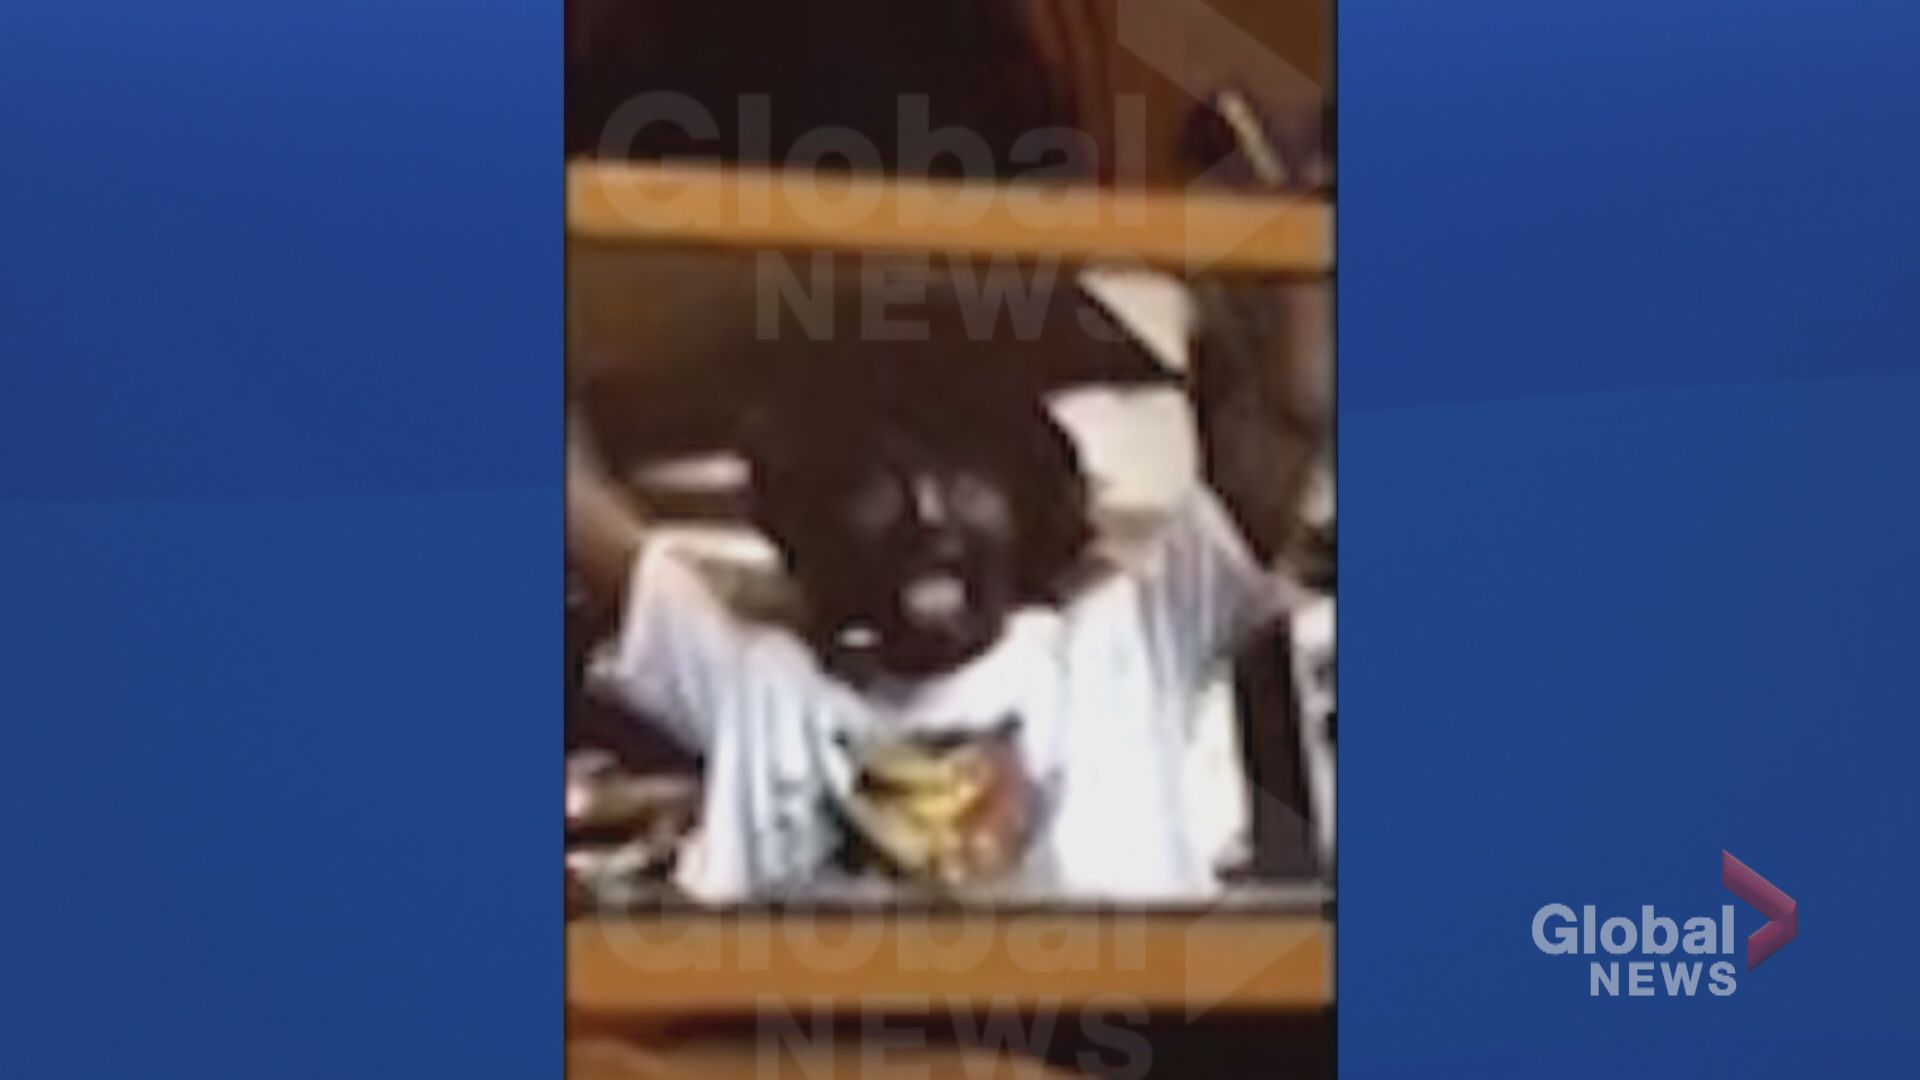 Quebec politicians weigh in on Justin Trudeau wearing blackface